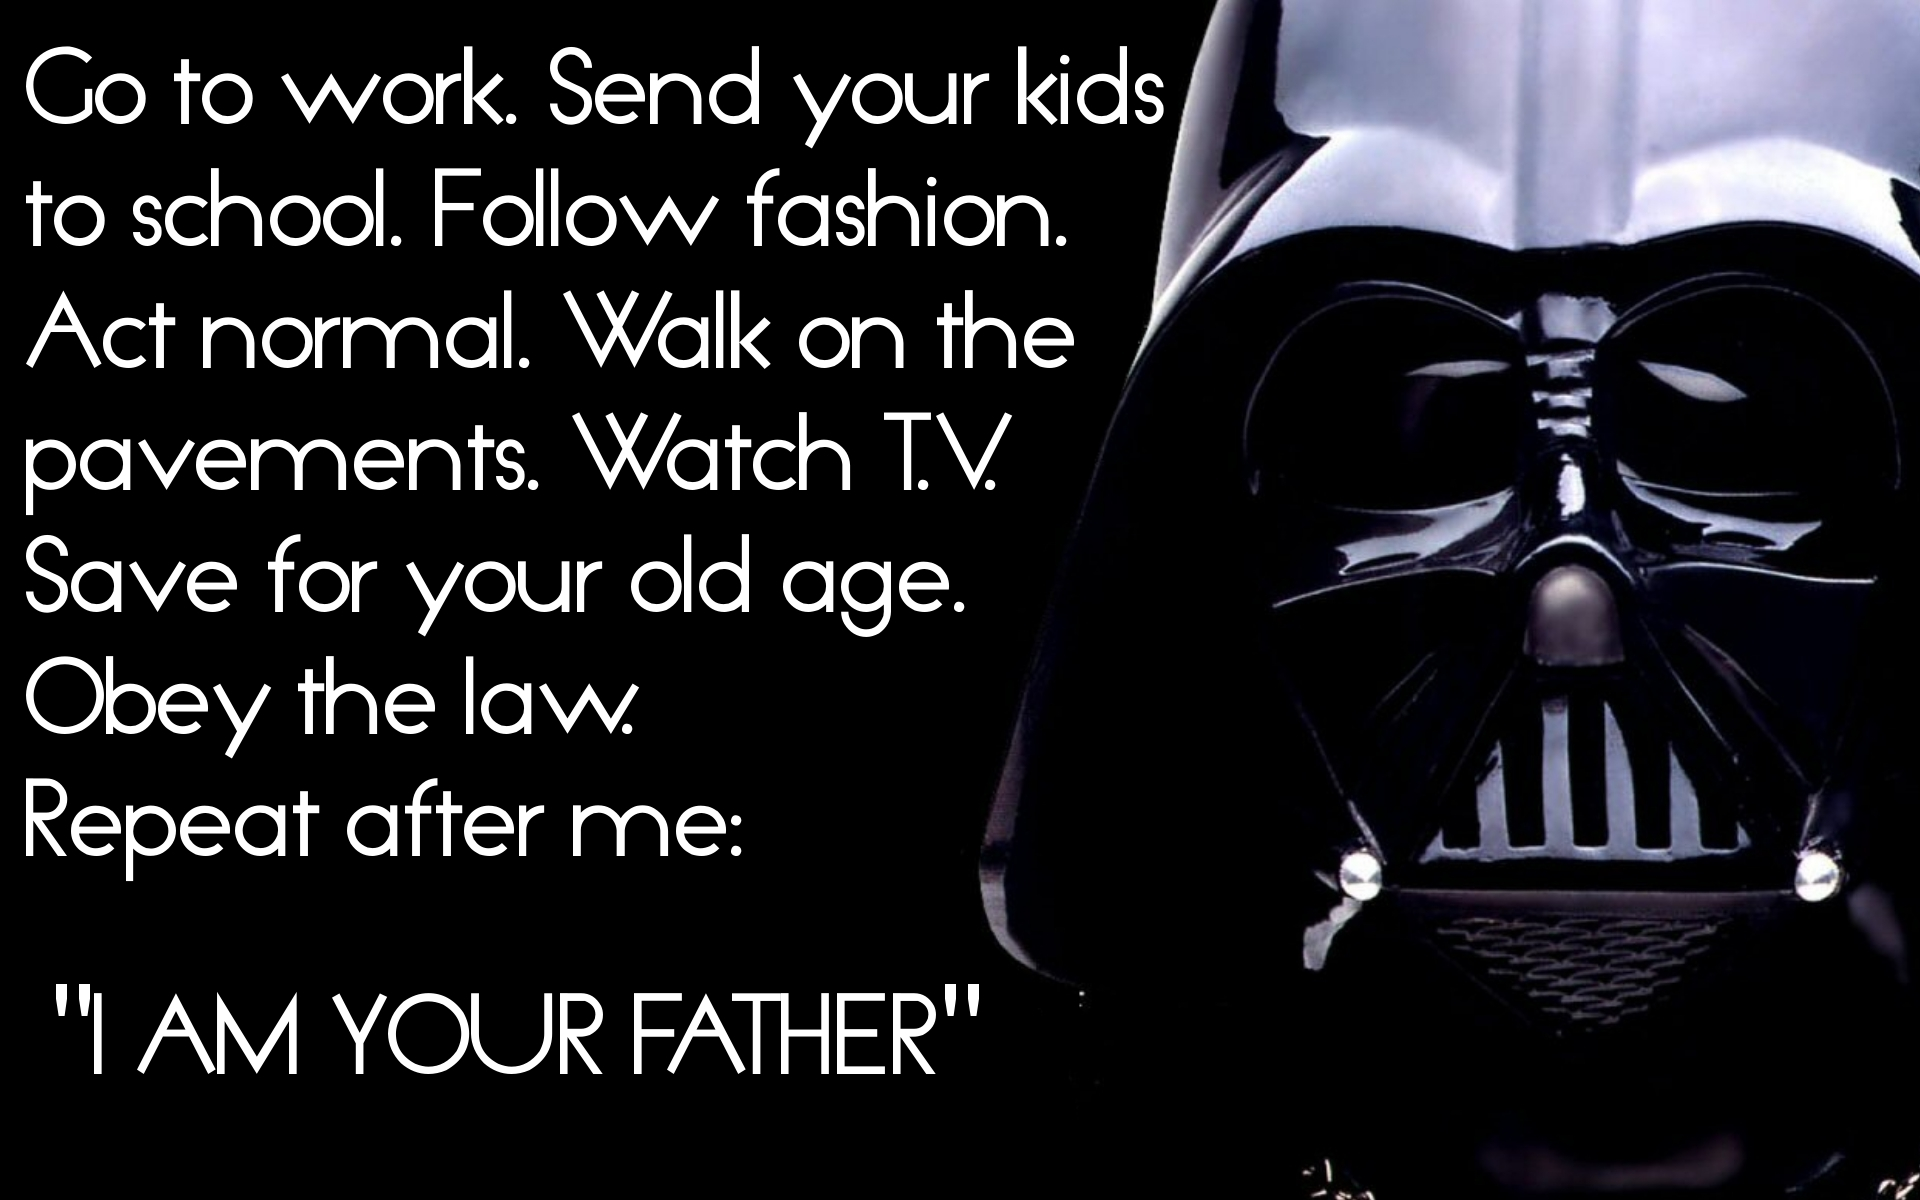 Darth Vader jokes